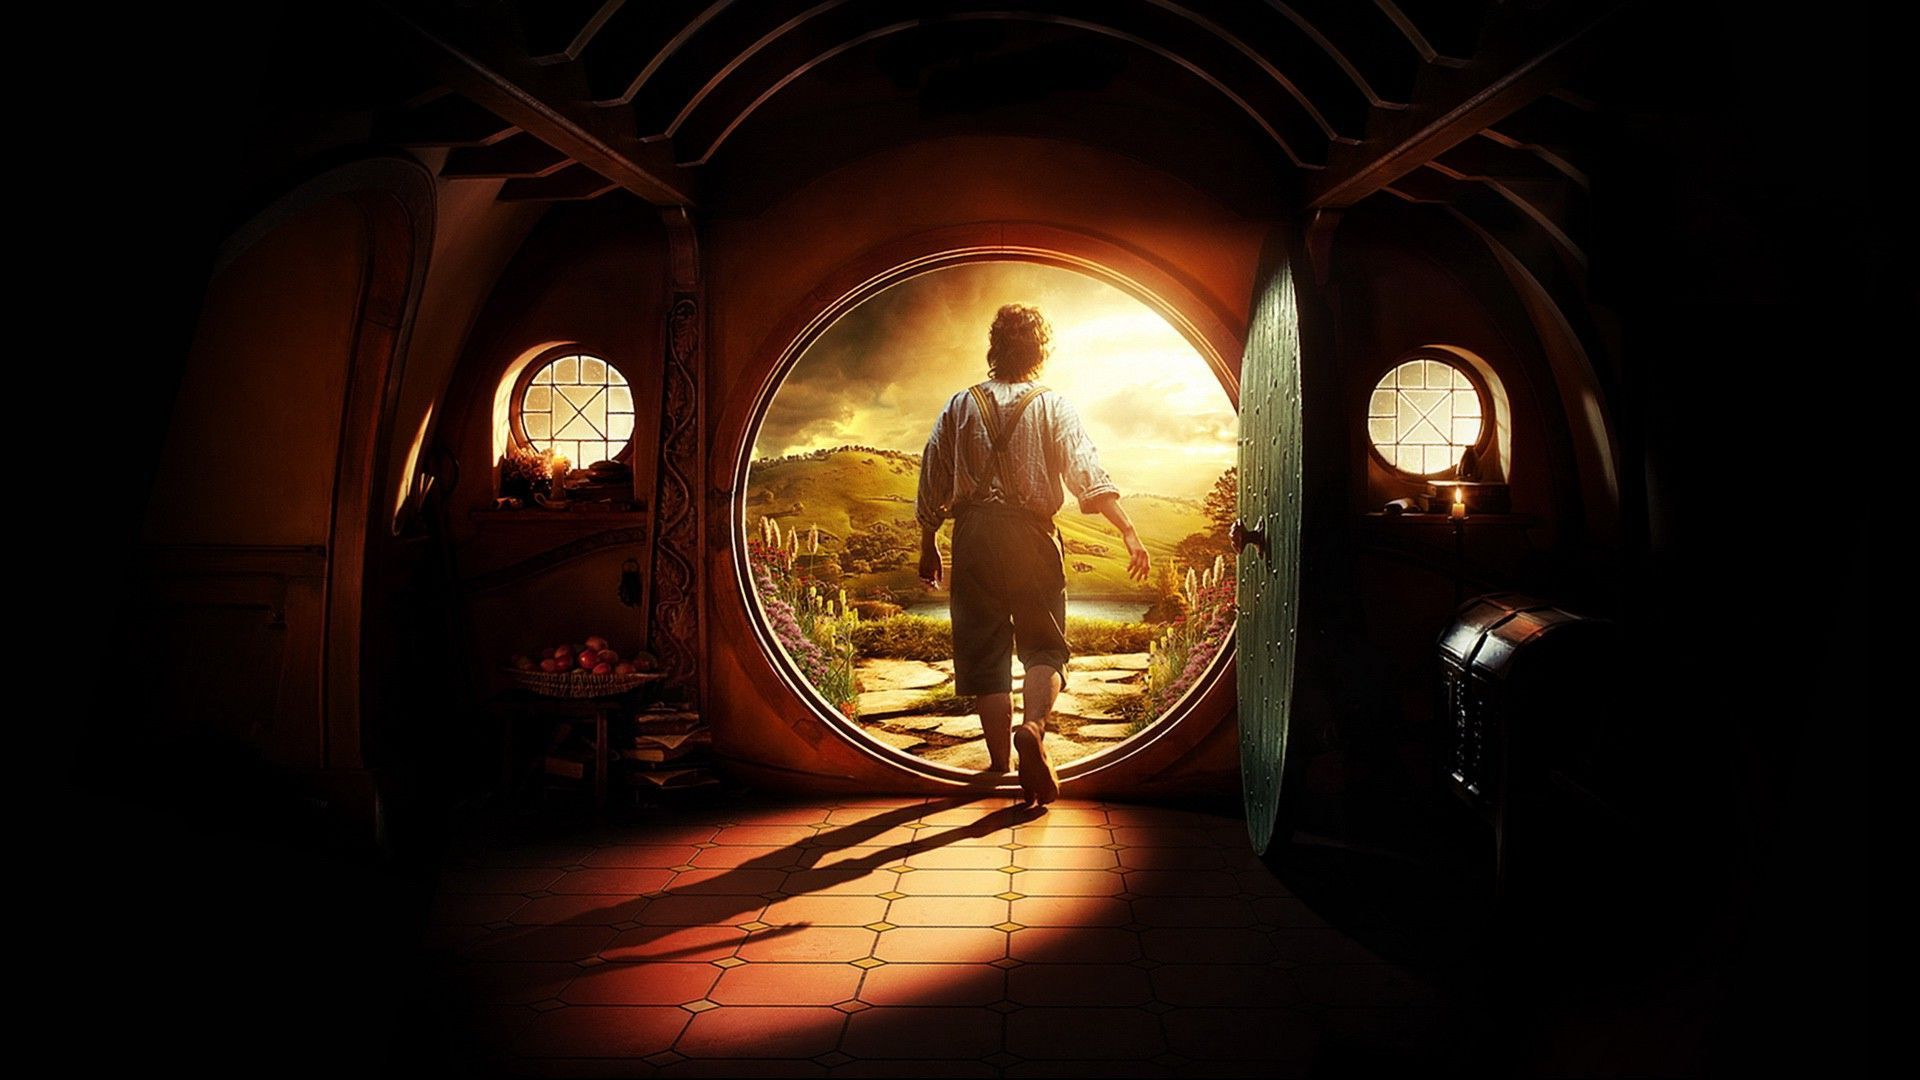 The Hobbit Wallpapers Widescreen M48S9S5   4USkY 1920x1080